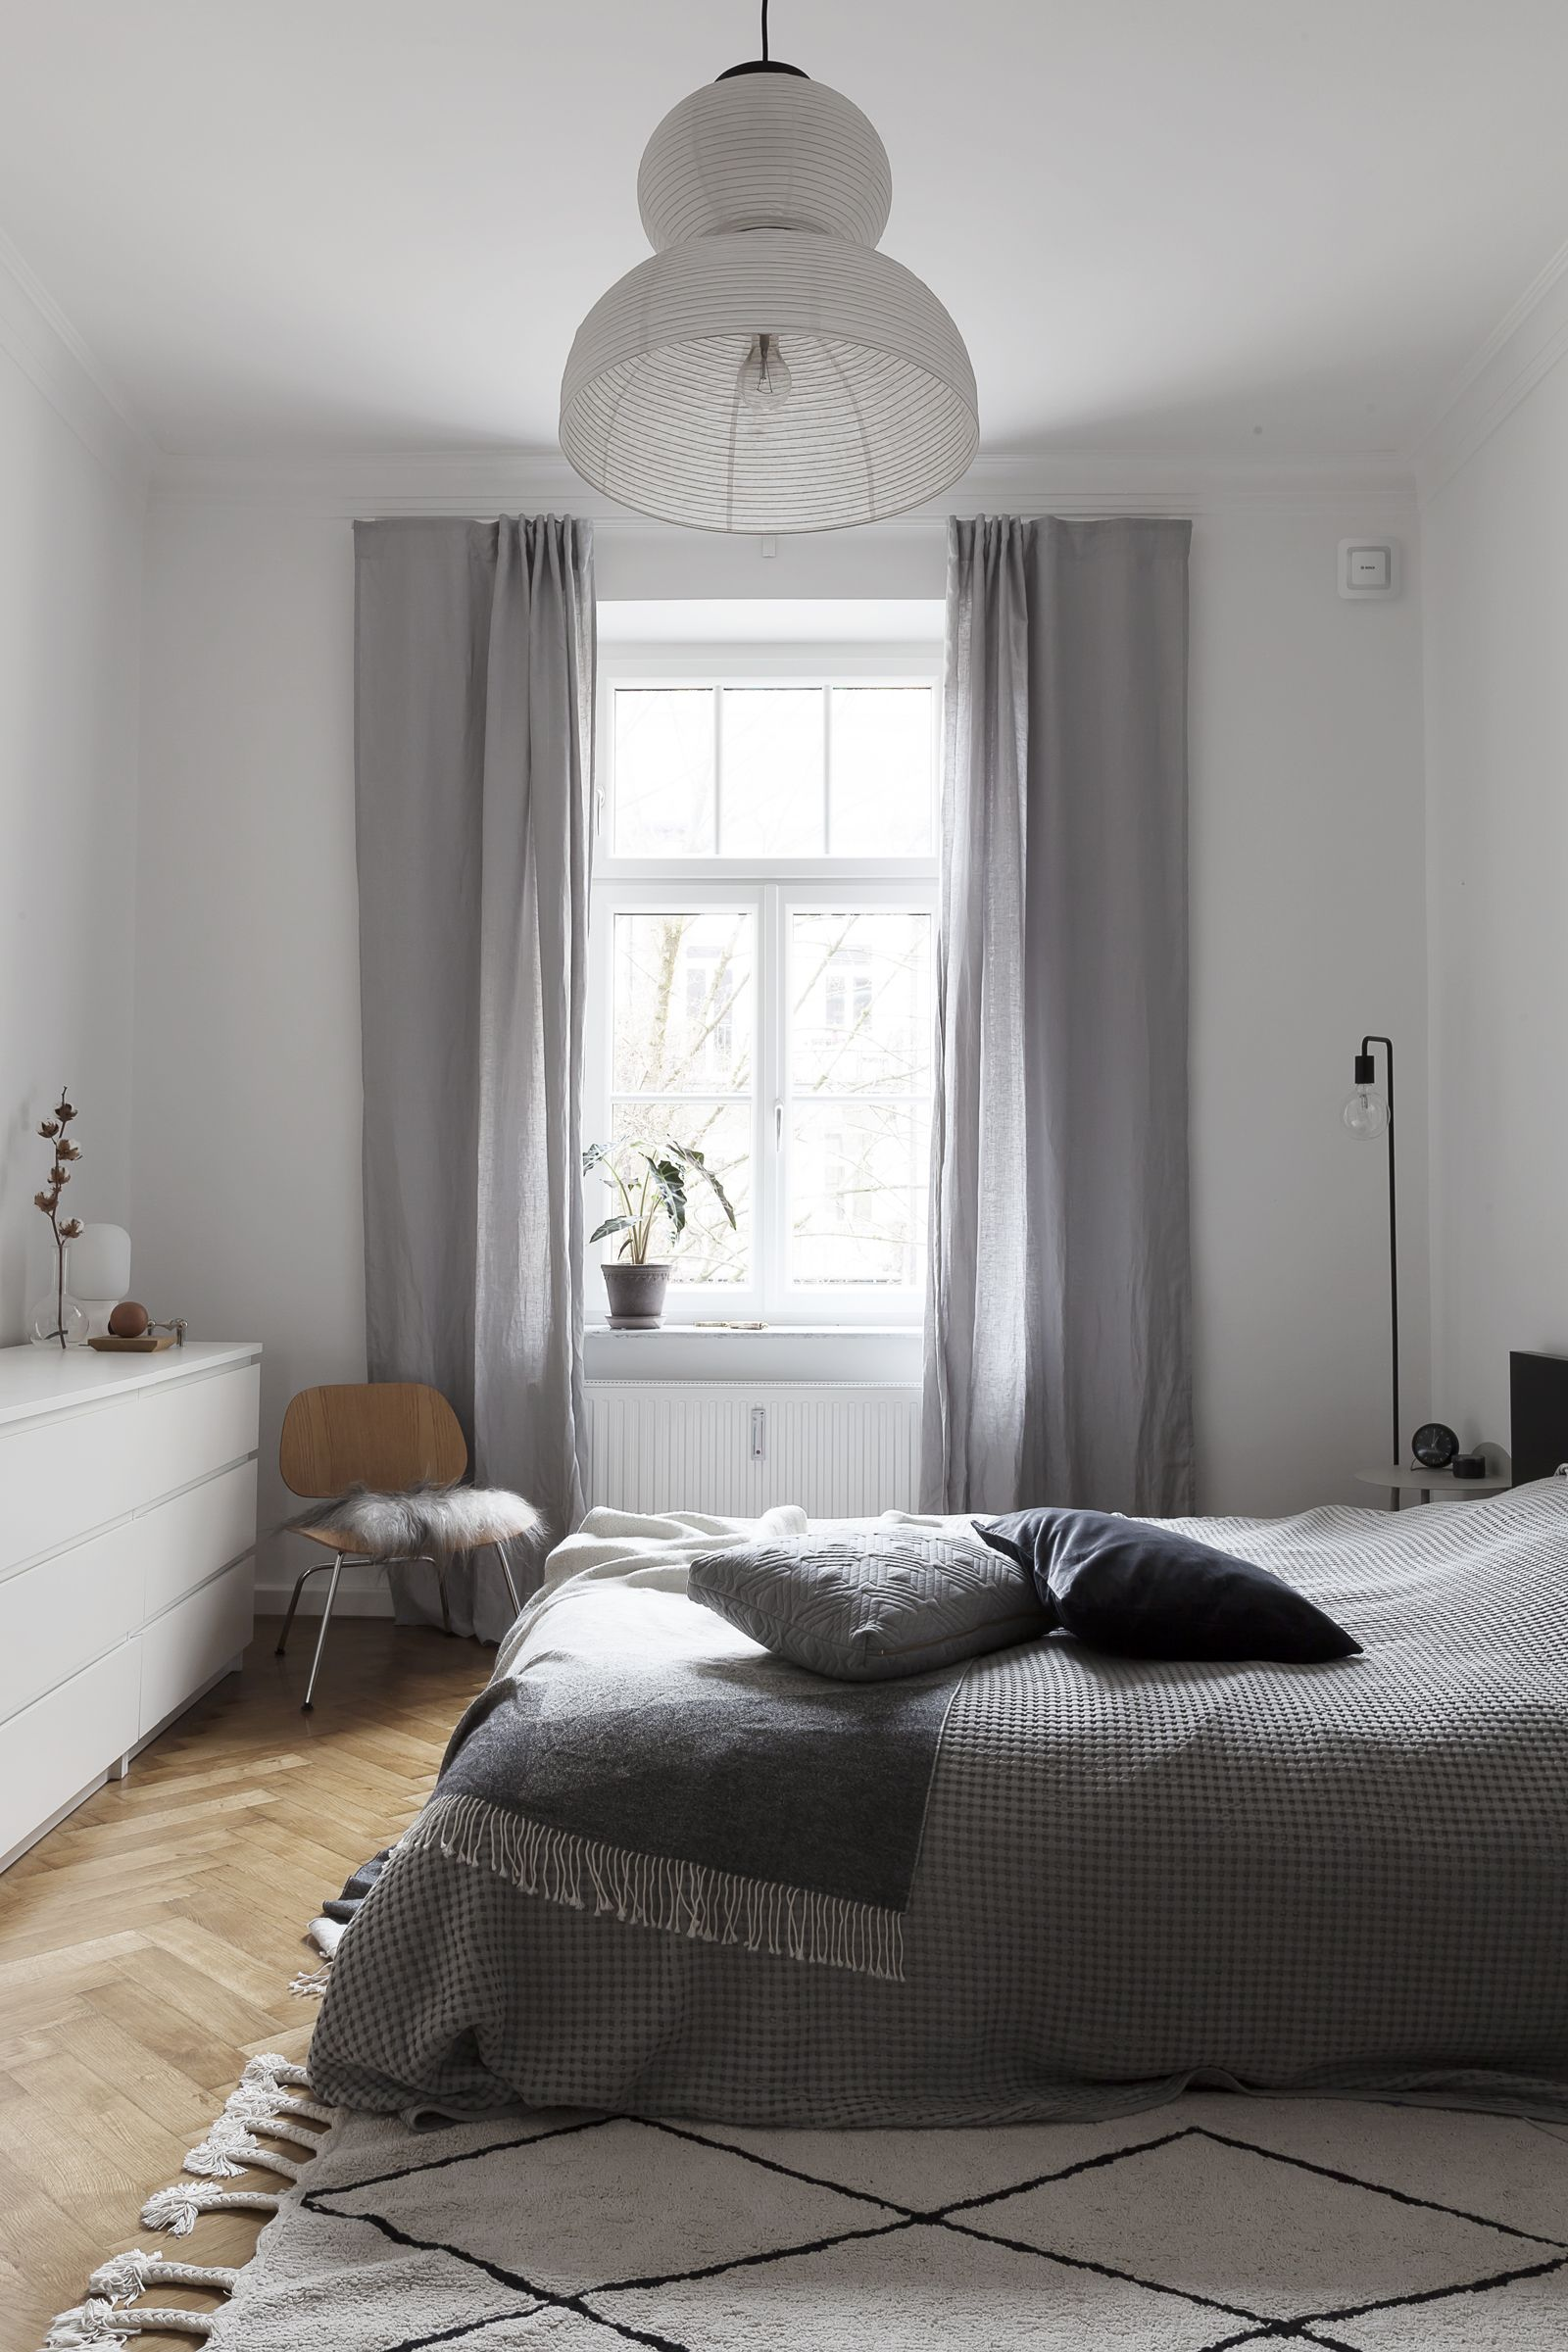 Vorhänge Schlafzimmer Skandinavisch Comfort With Bosch Smart Home Via Coco Lapine Design Blog